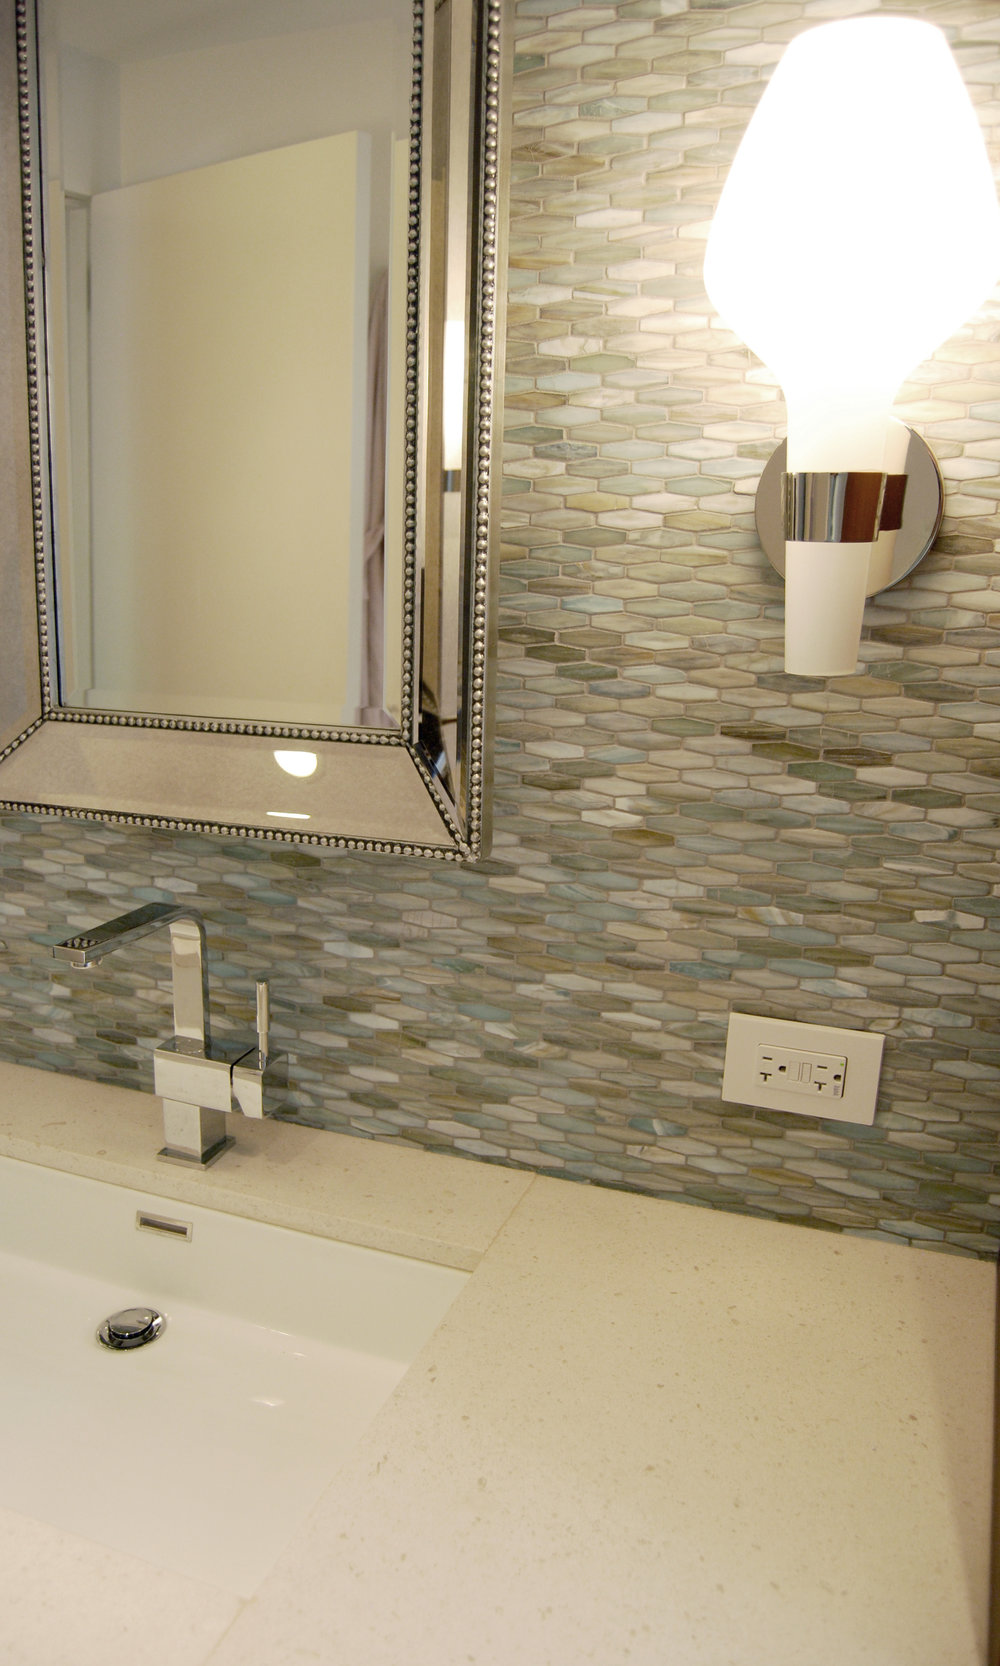 Eclectic mix of tile, plumbing fixtures, lighting and mirrors. Selected for a master bathroom in Hyde Park.